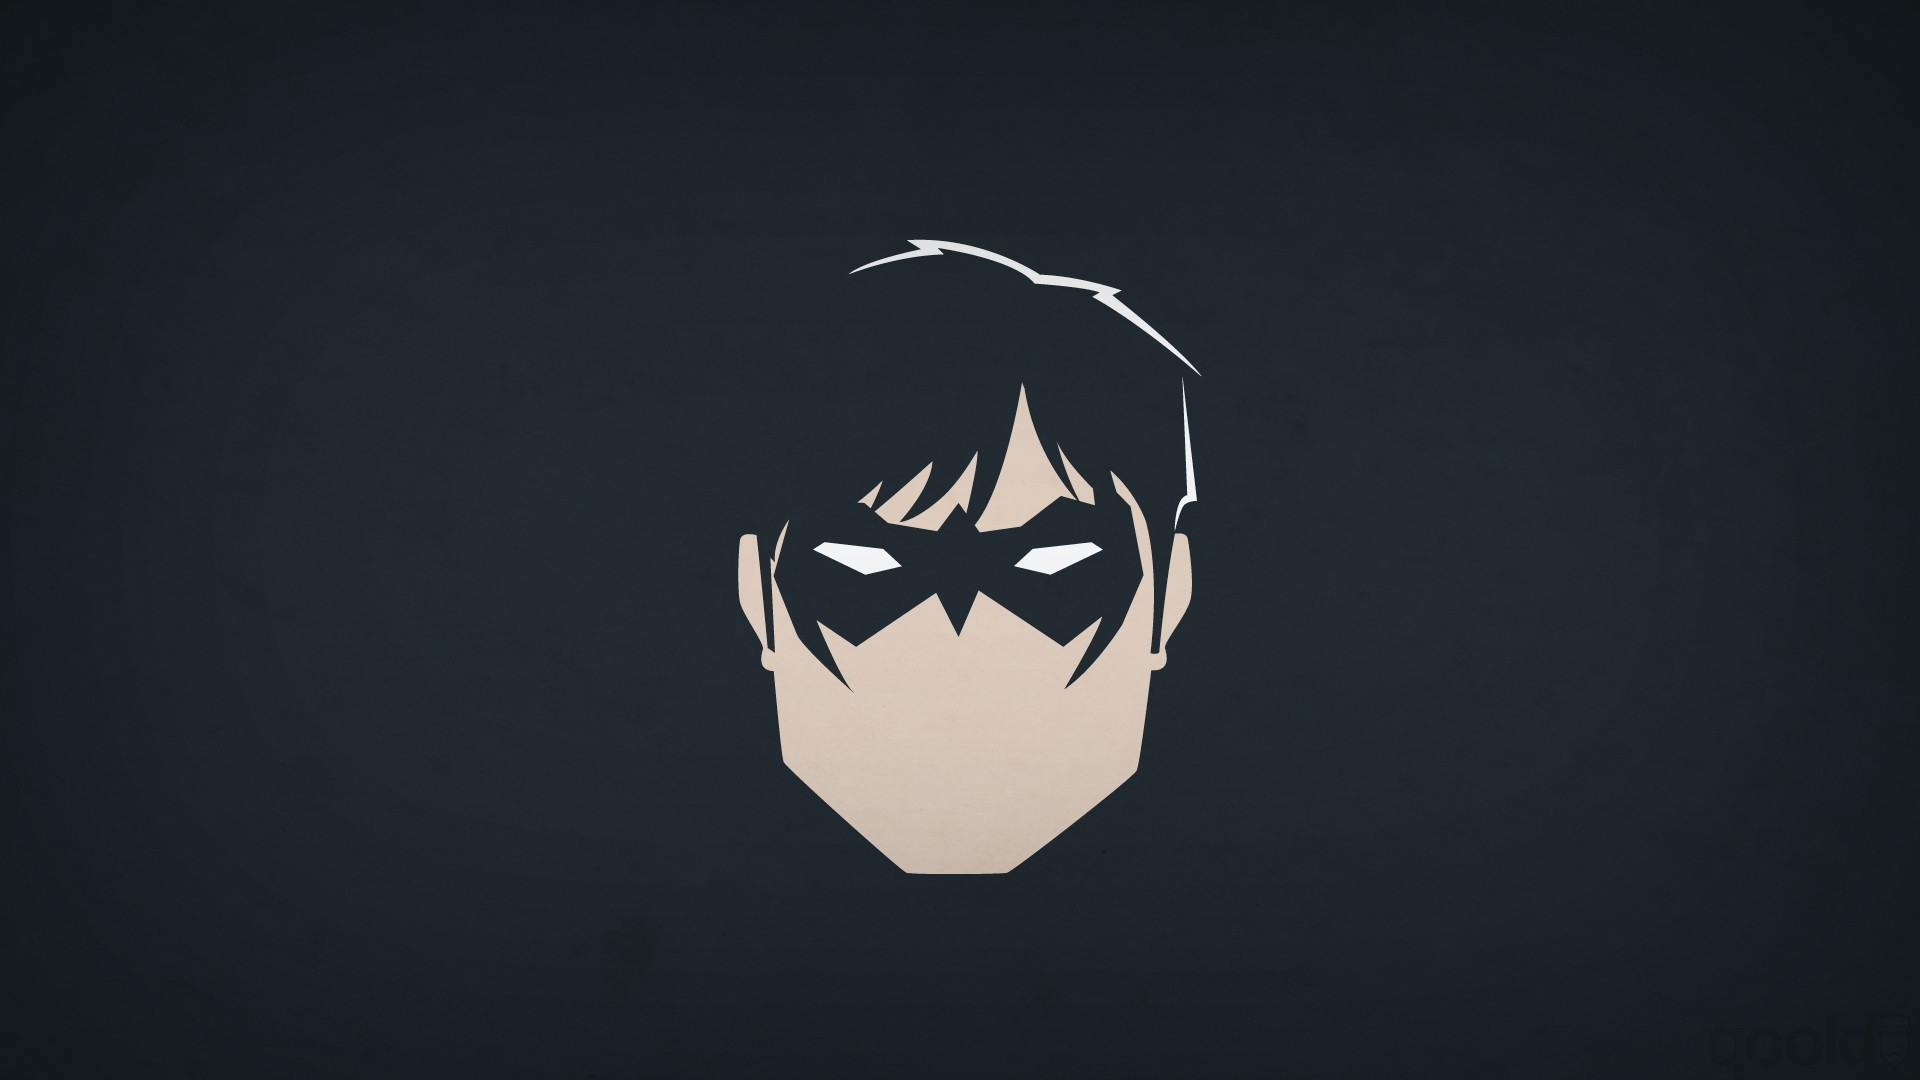 Minimalist Superhero Wallpaper 84 Images